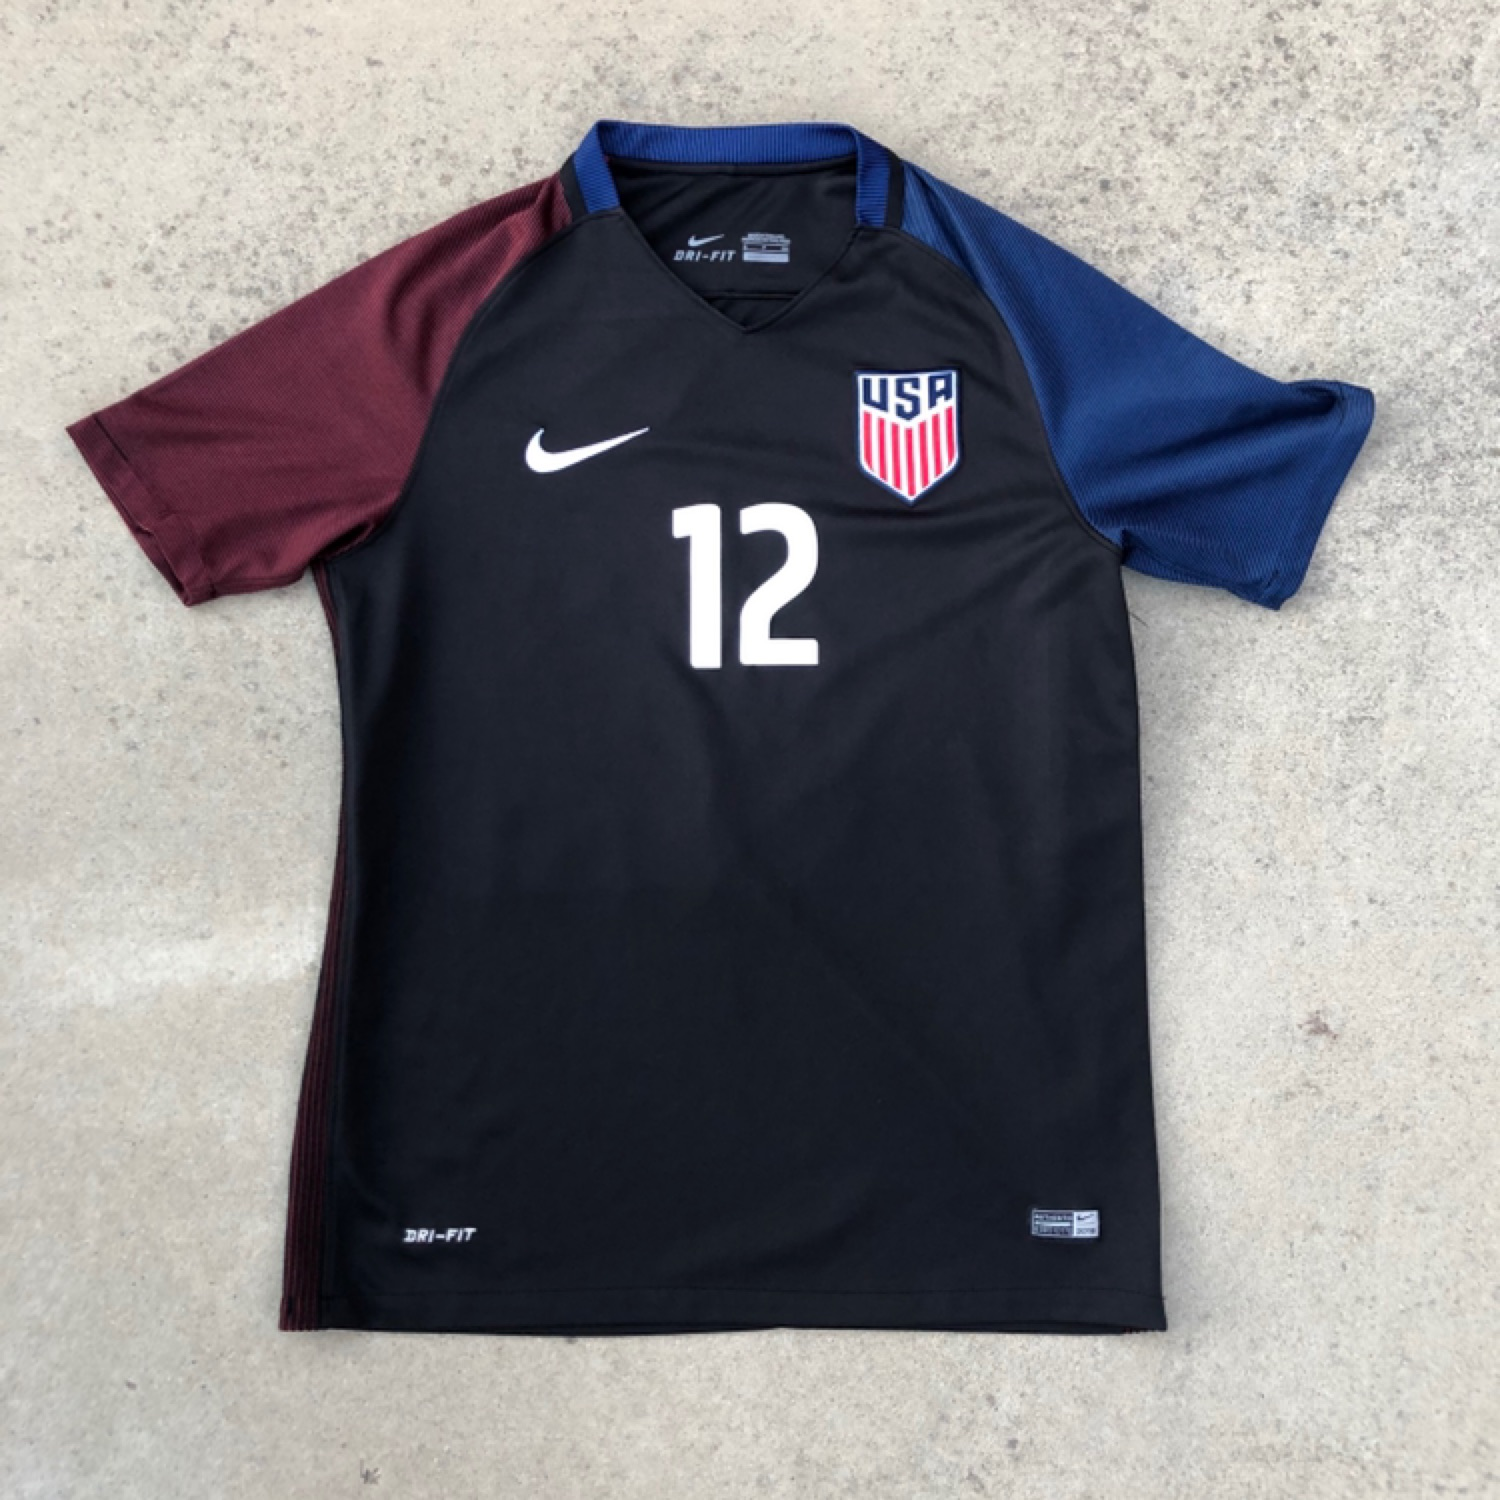 Nike DriFit Men/'s US USA Soccer Football Authentic Jersey NWT